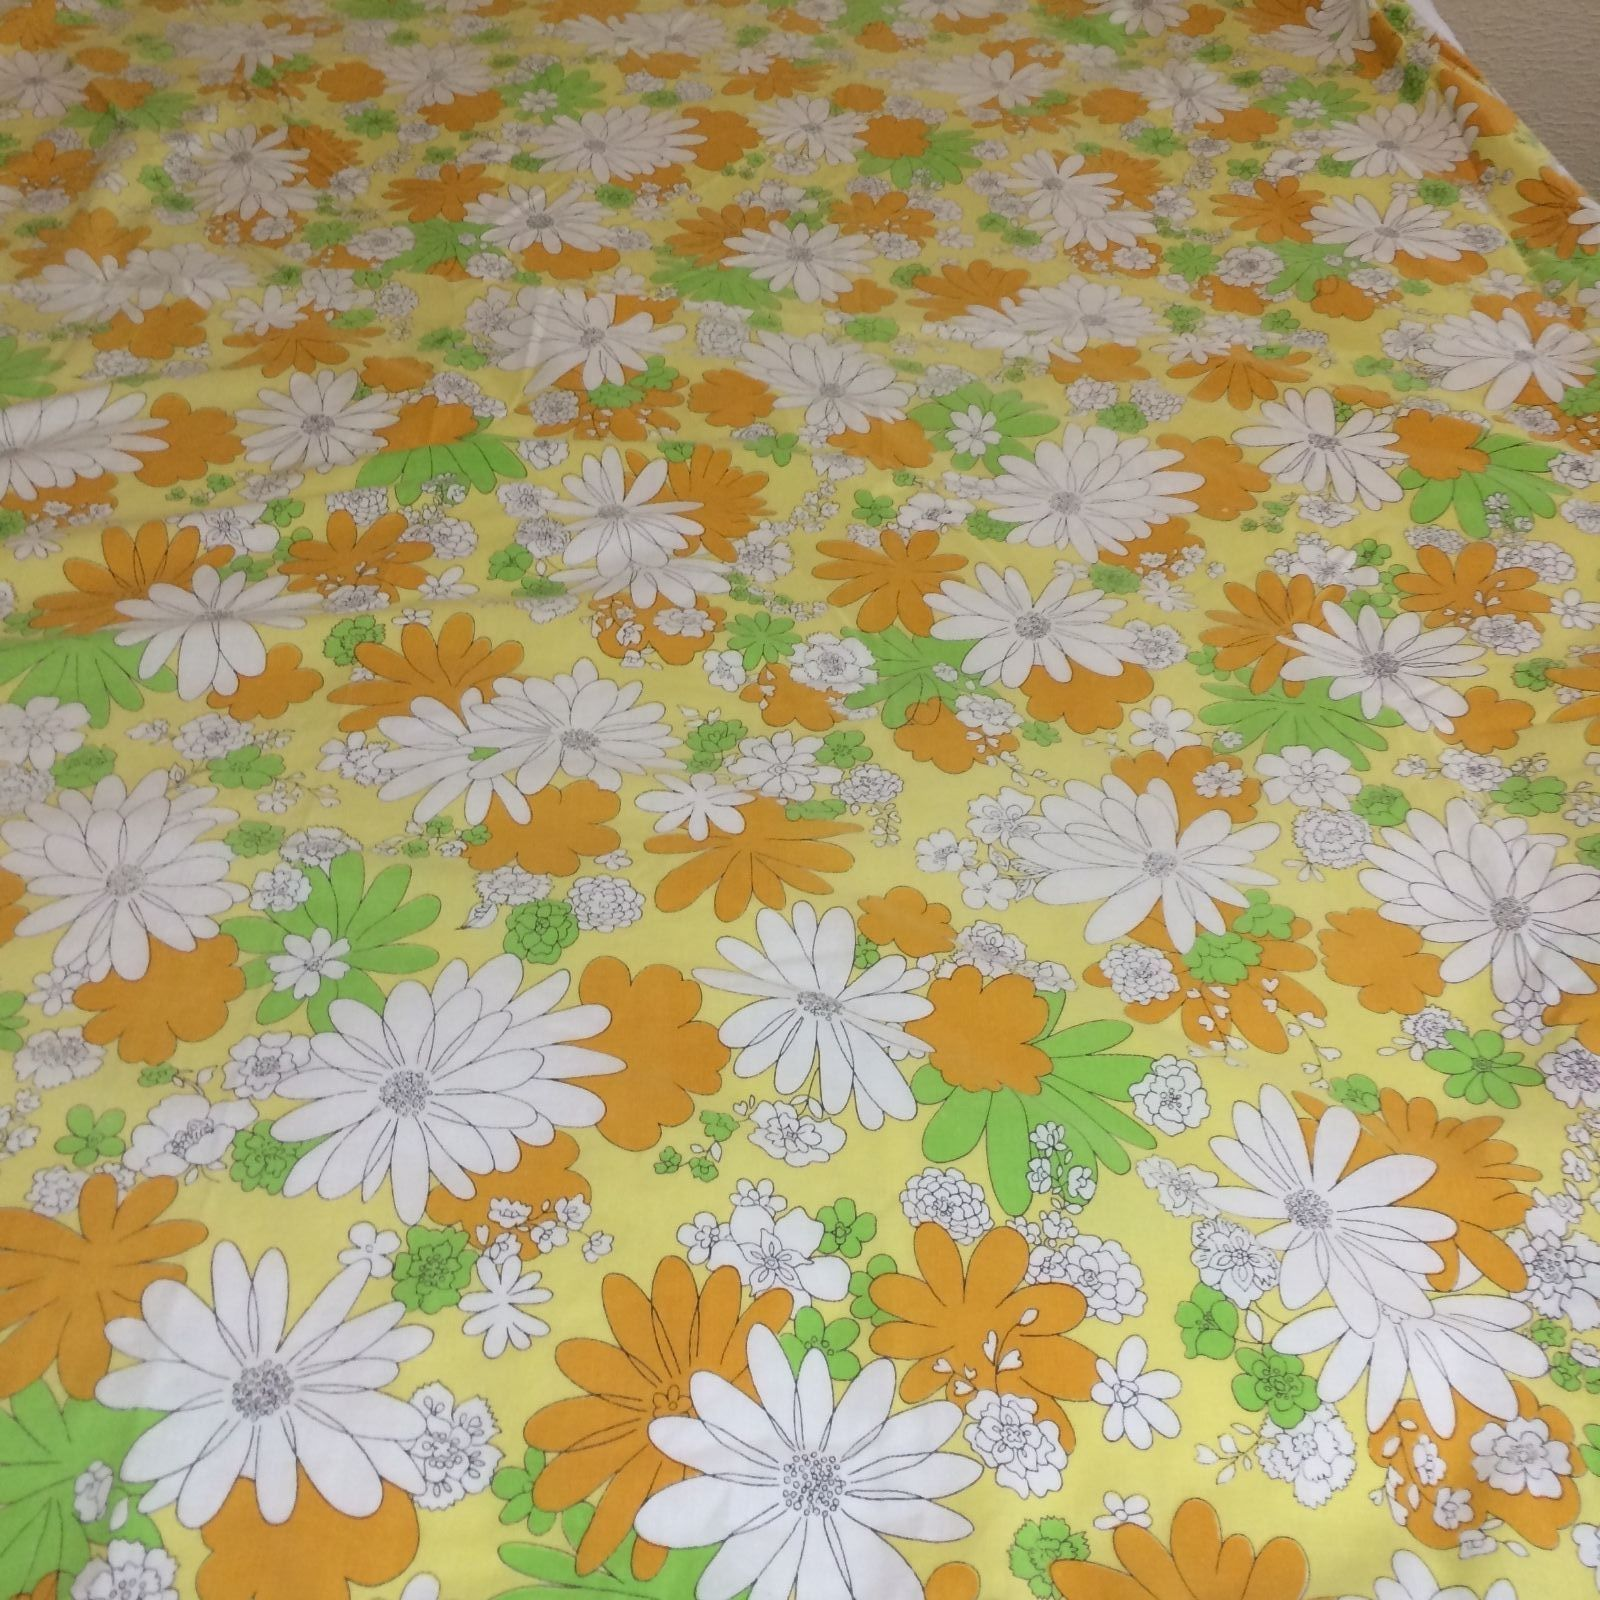 Vintage Cannon Monticello No Iron Muslin 50 Polyester Cotton Bed Sheets Flower Fl Green Orange And White Daisies On Yellow Background